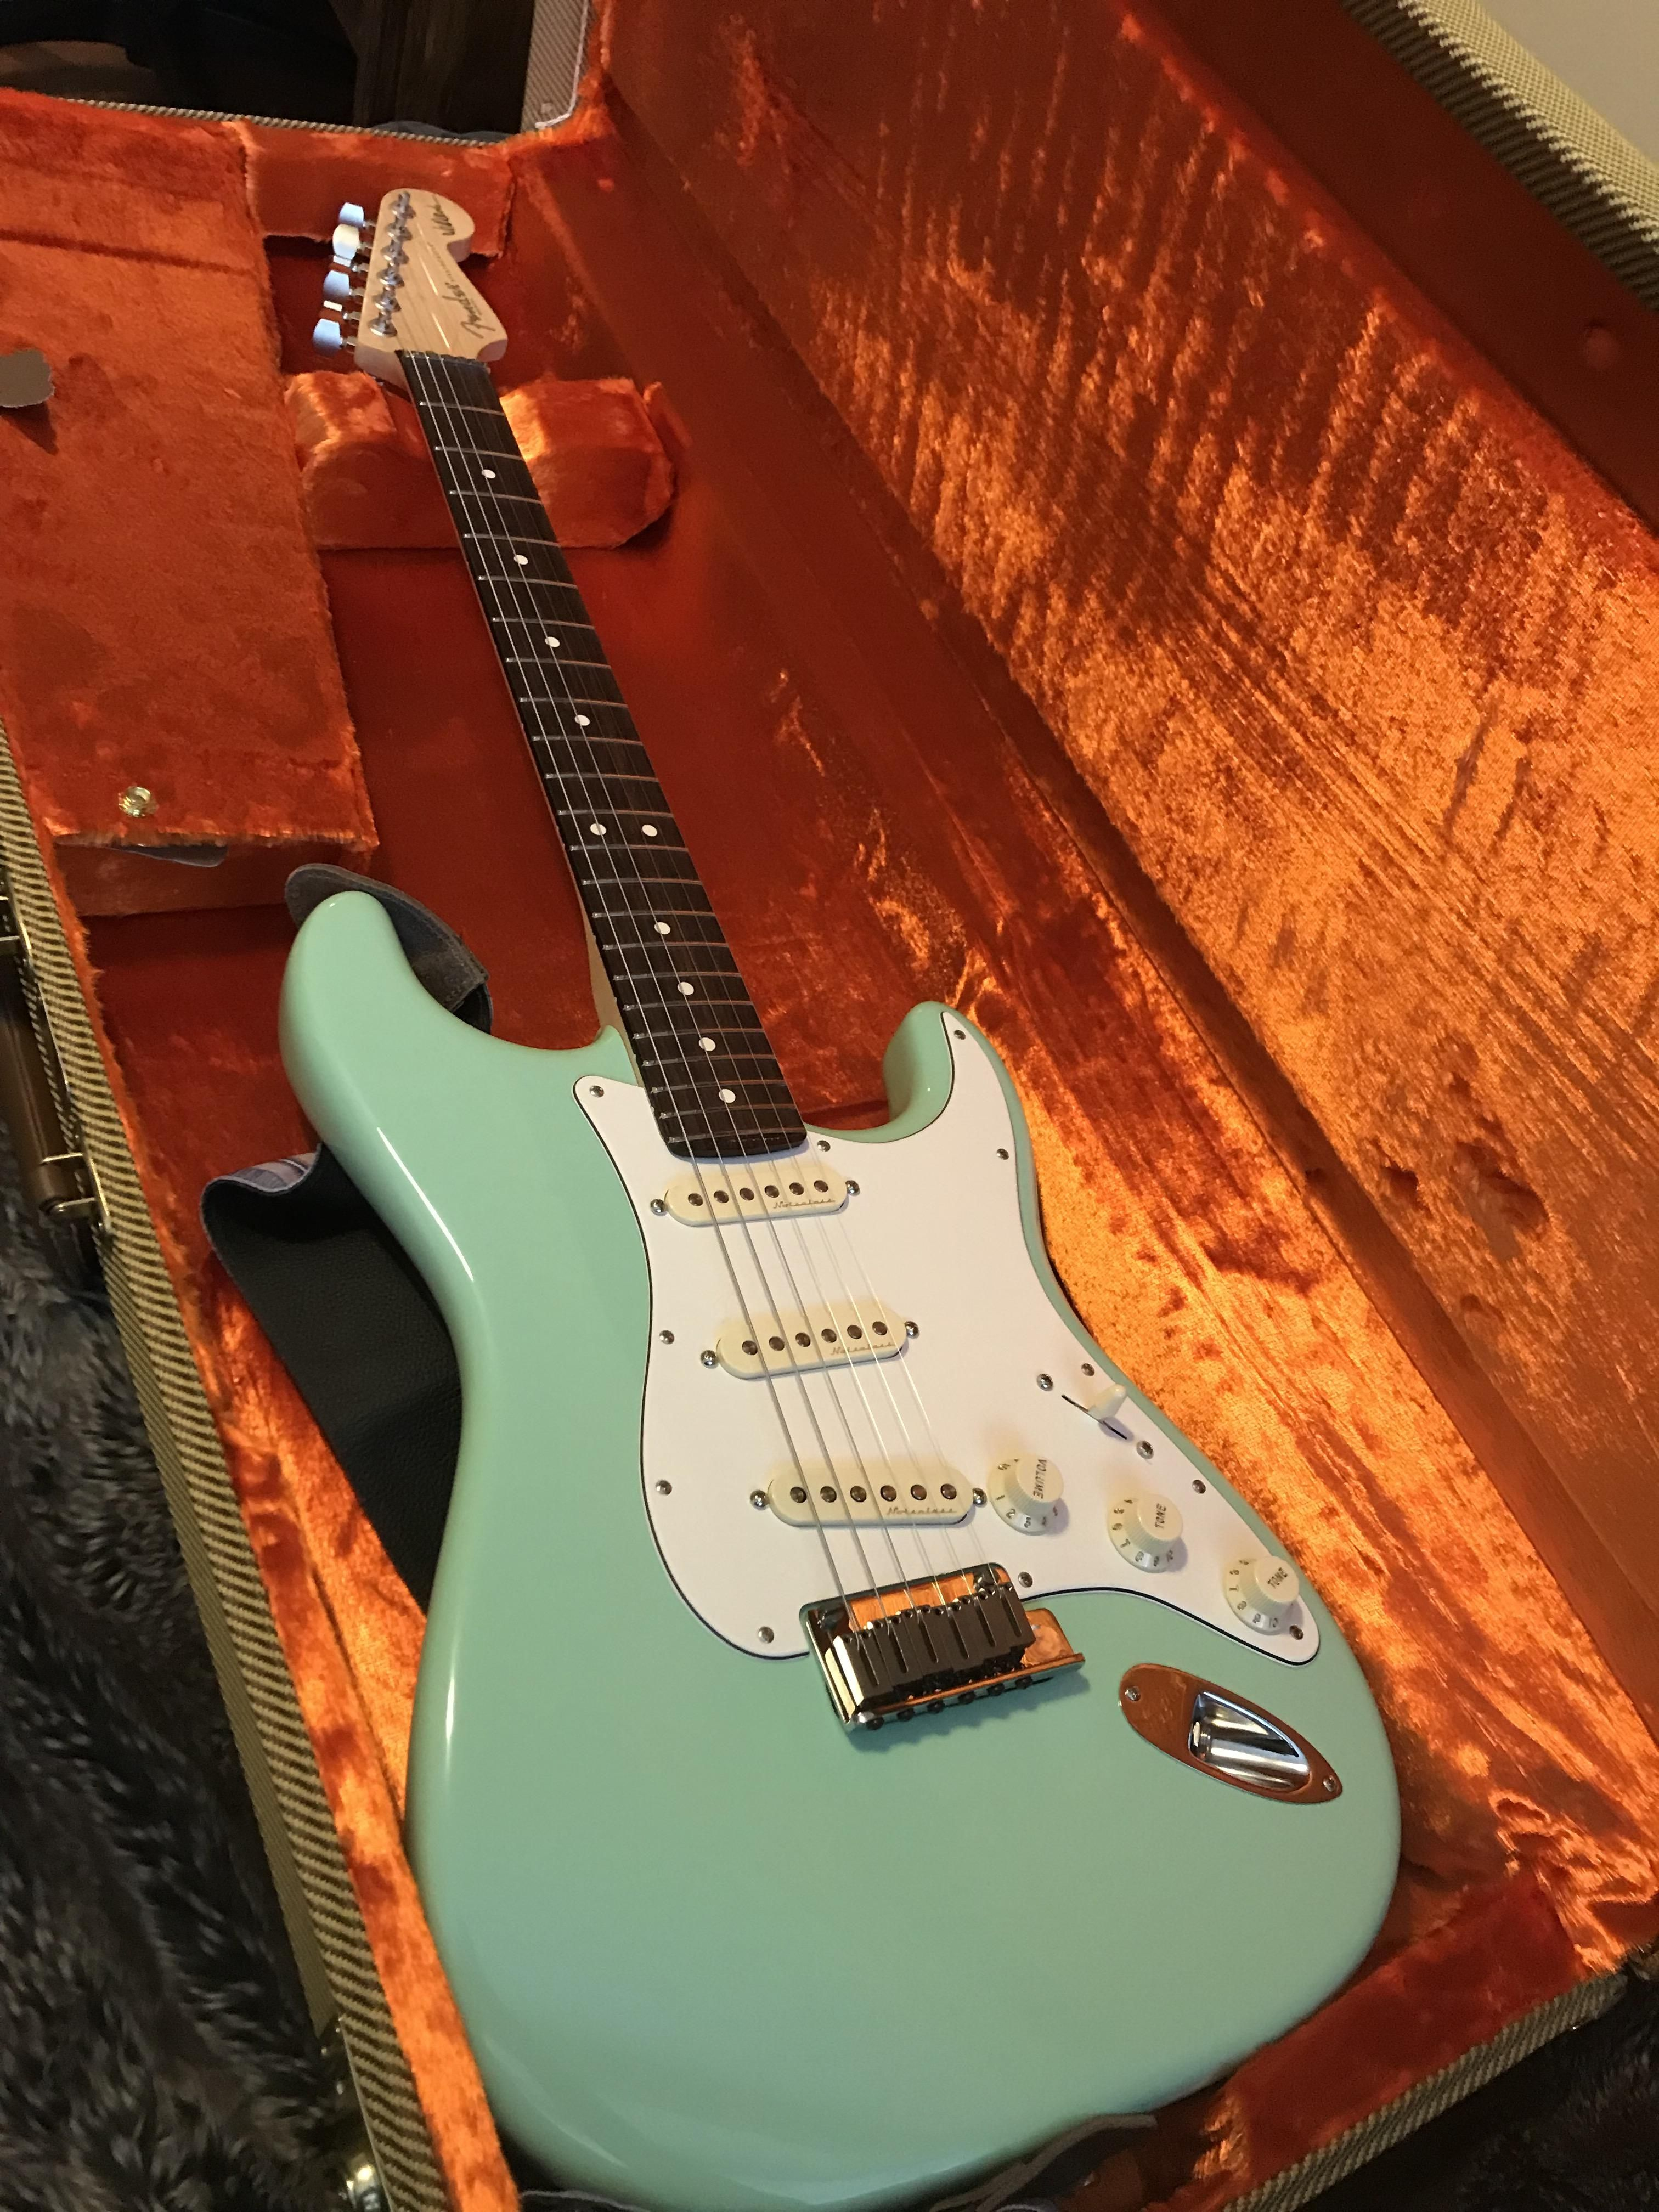 Ngd Jeff Beck Artist Series Strat In Surf Green Loving The Noiseless Pickups Jeff Beck Surfing Green